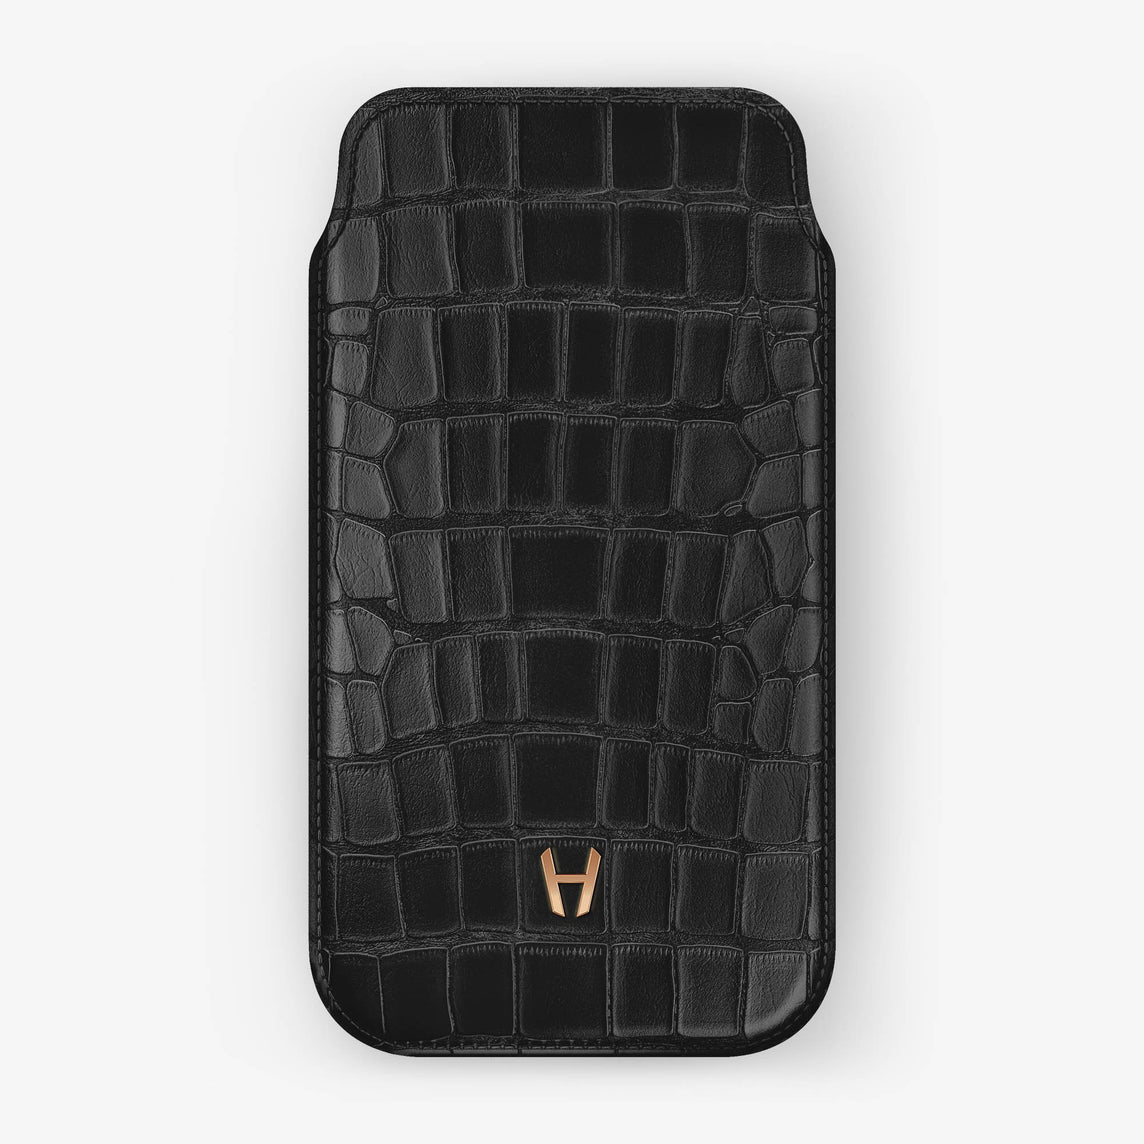 Alligator [iPhone Sleeve Case] [model:iphone-xsmax-case] [colour:black] [finishing:rose-gold]